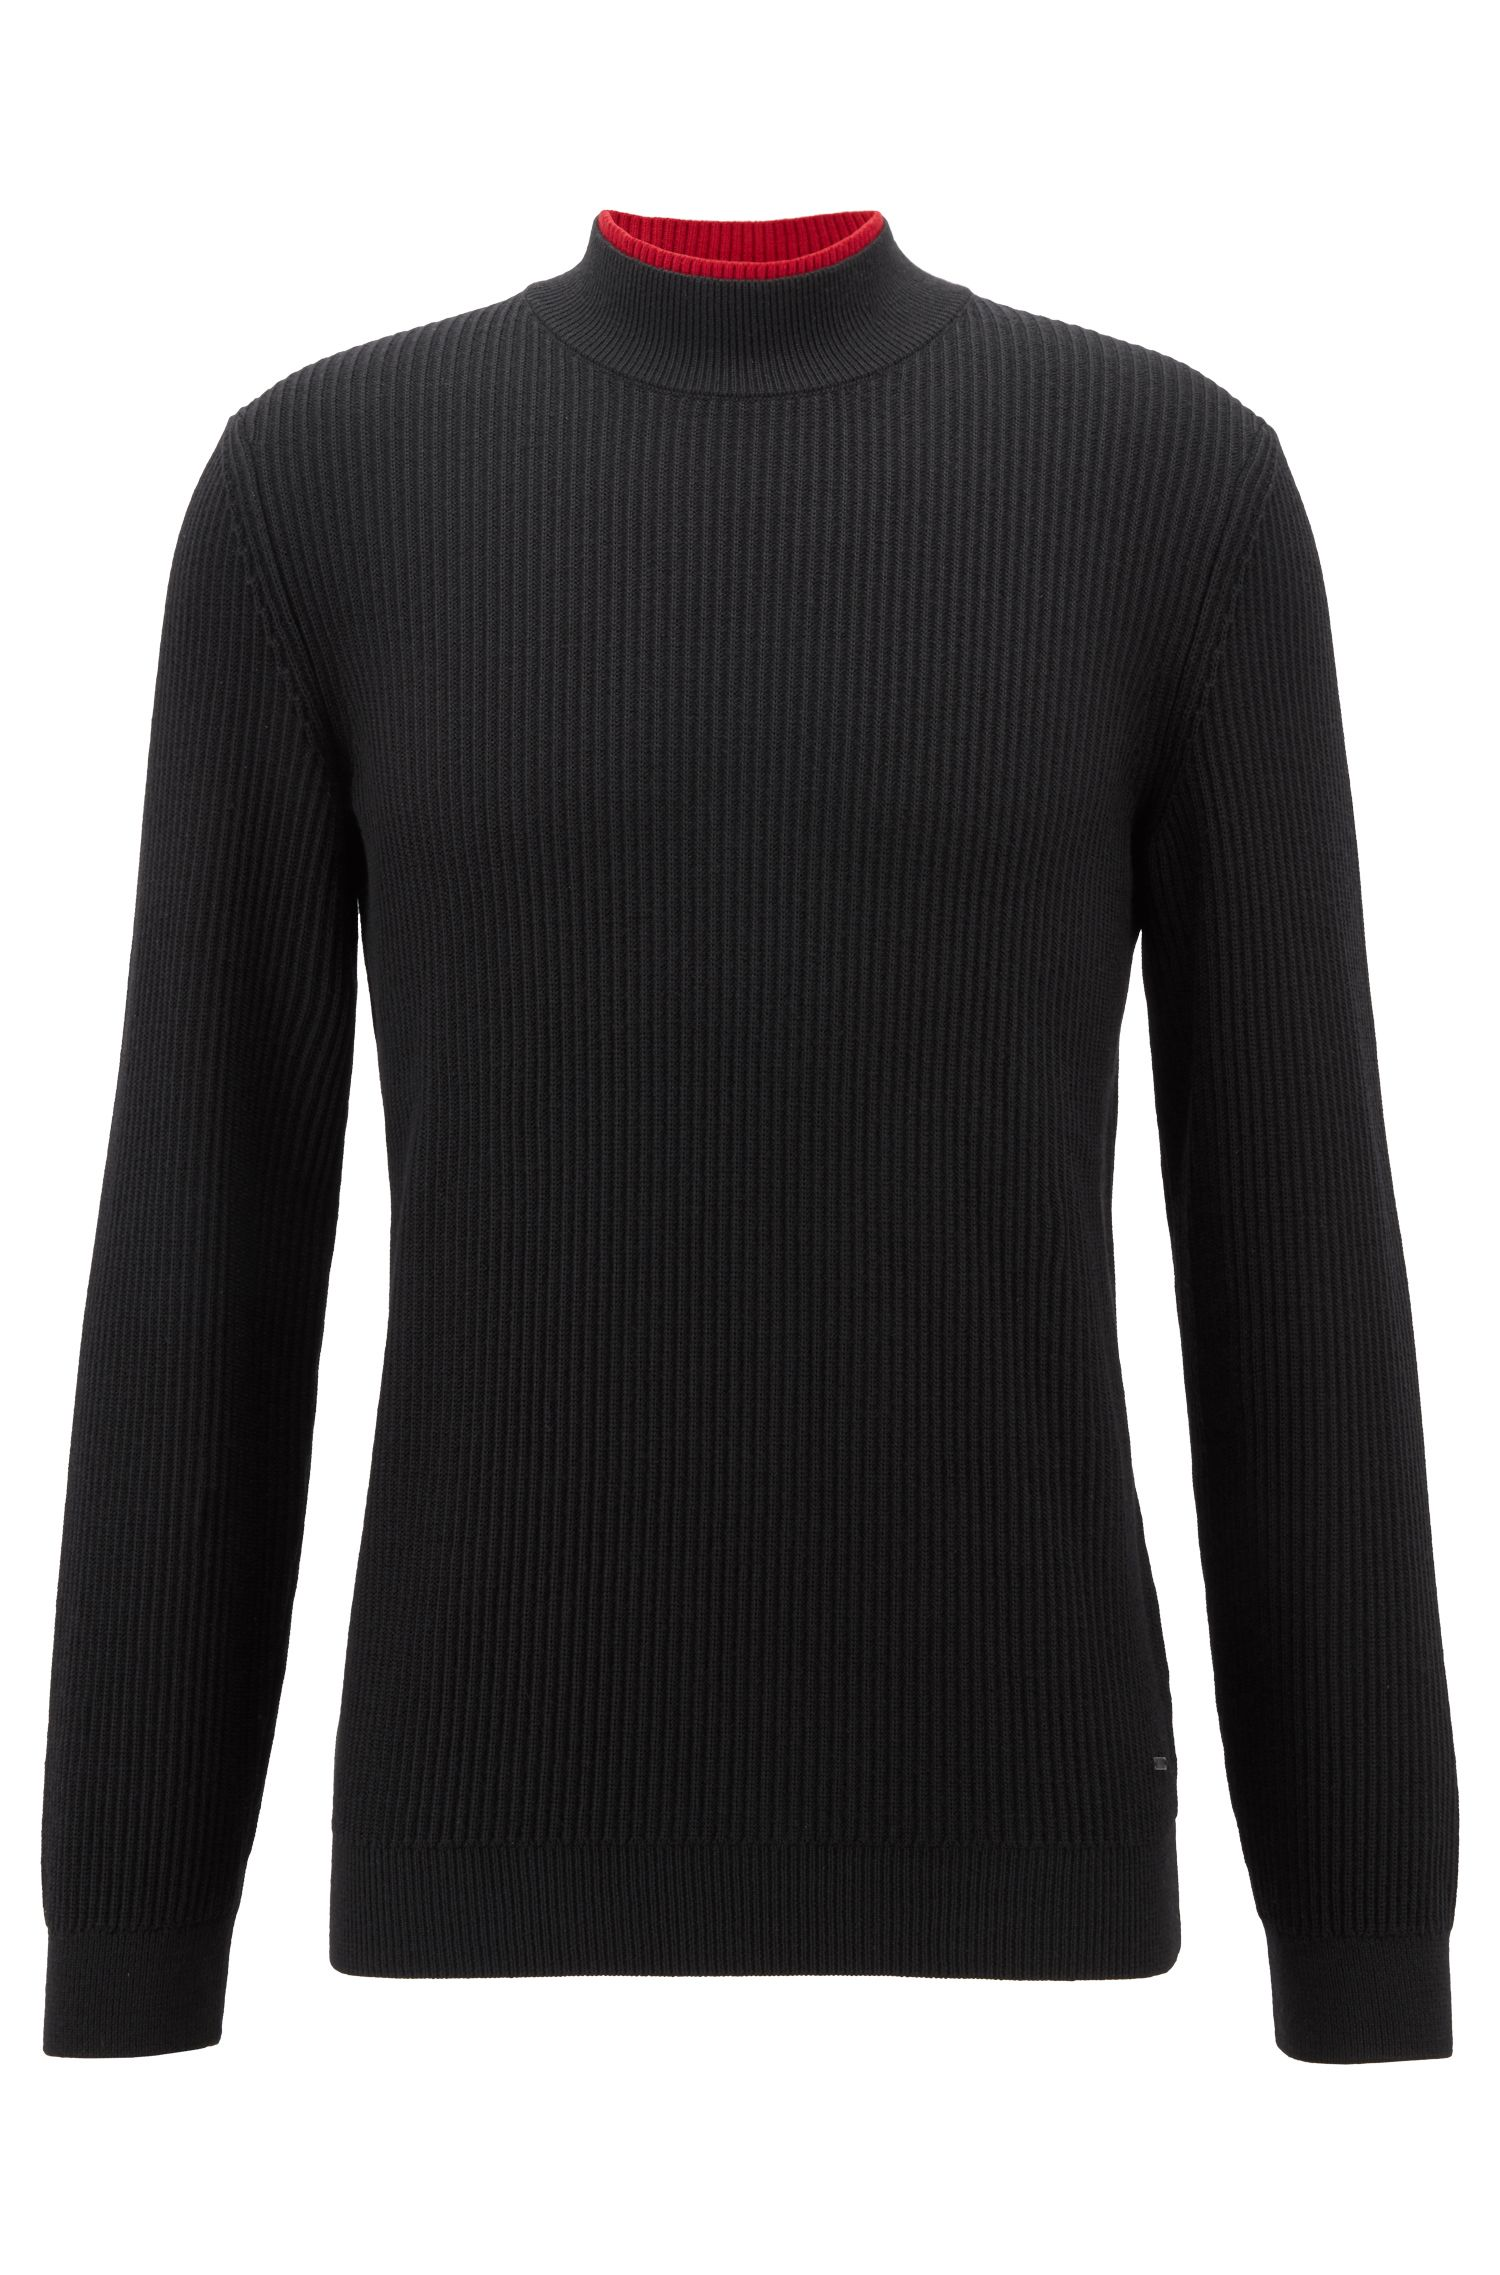 Virgin Wool Turtleneck Sweater | Passione